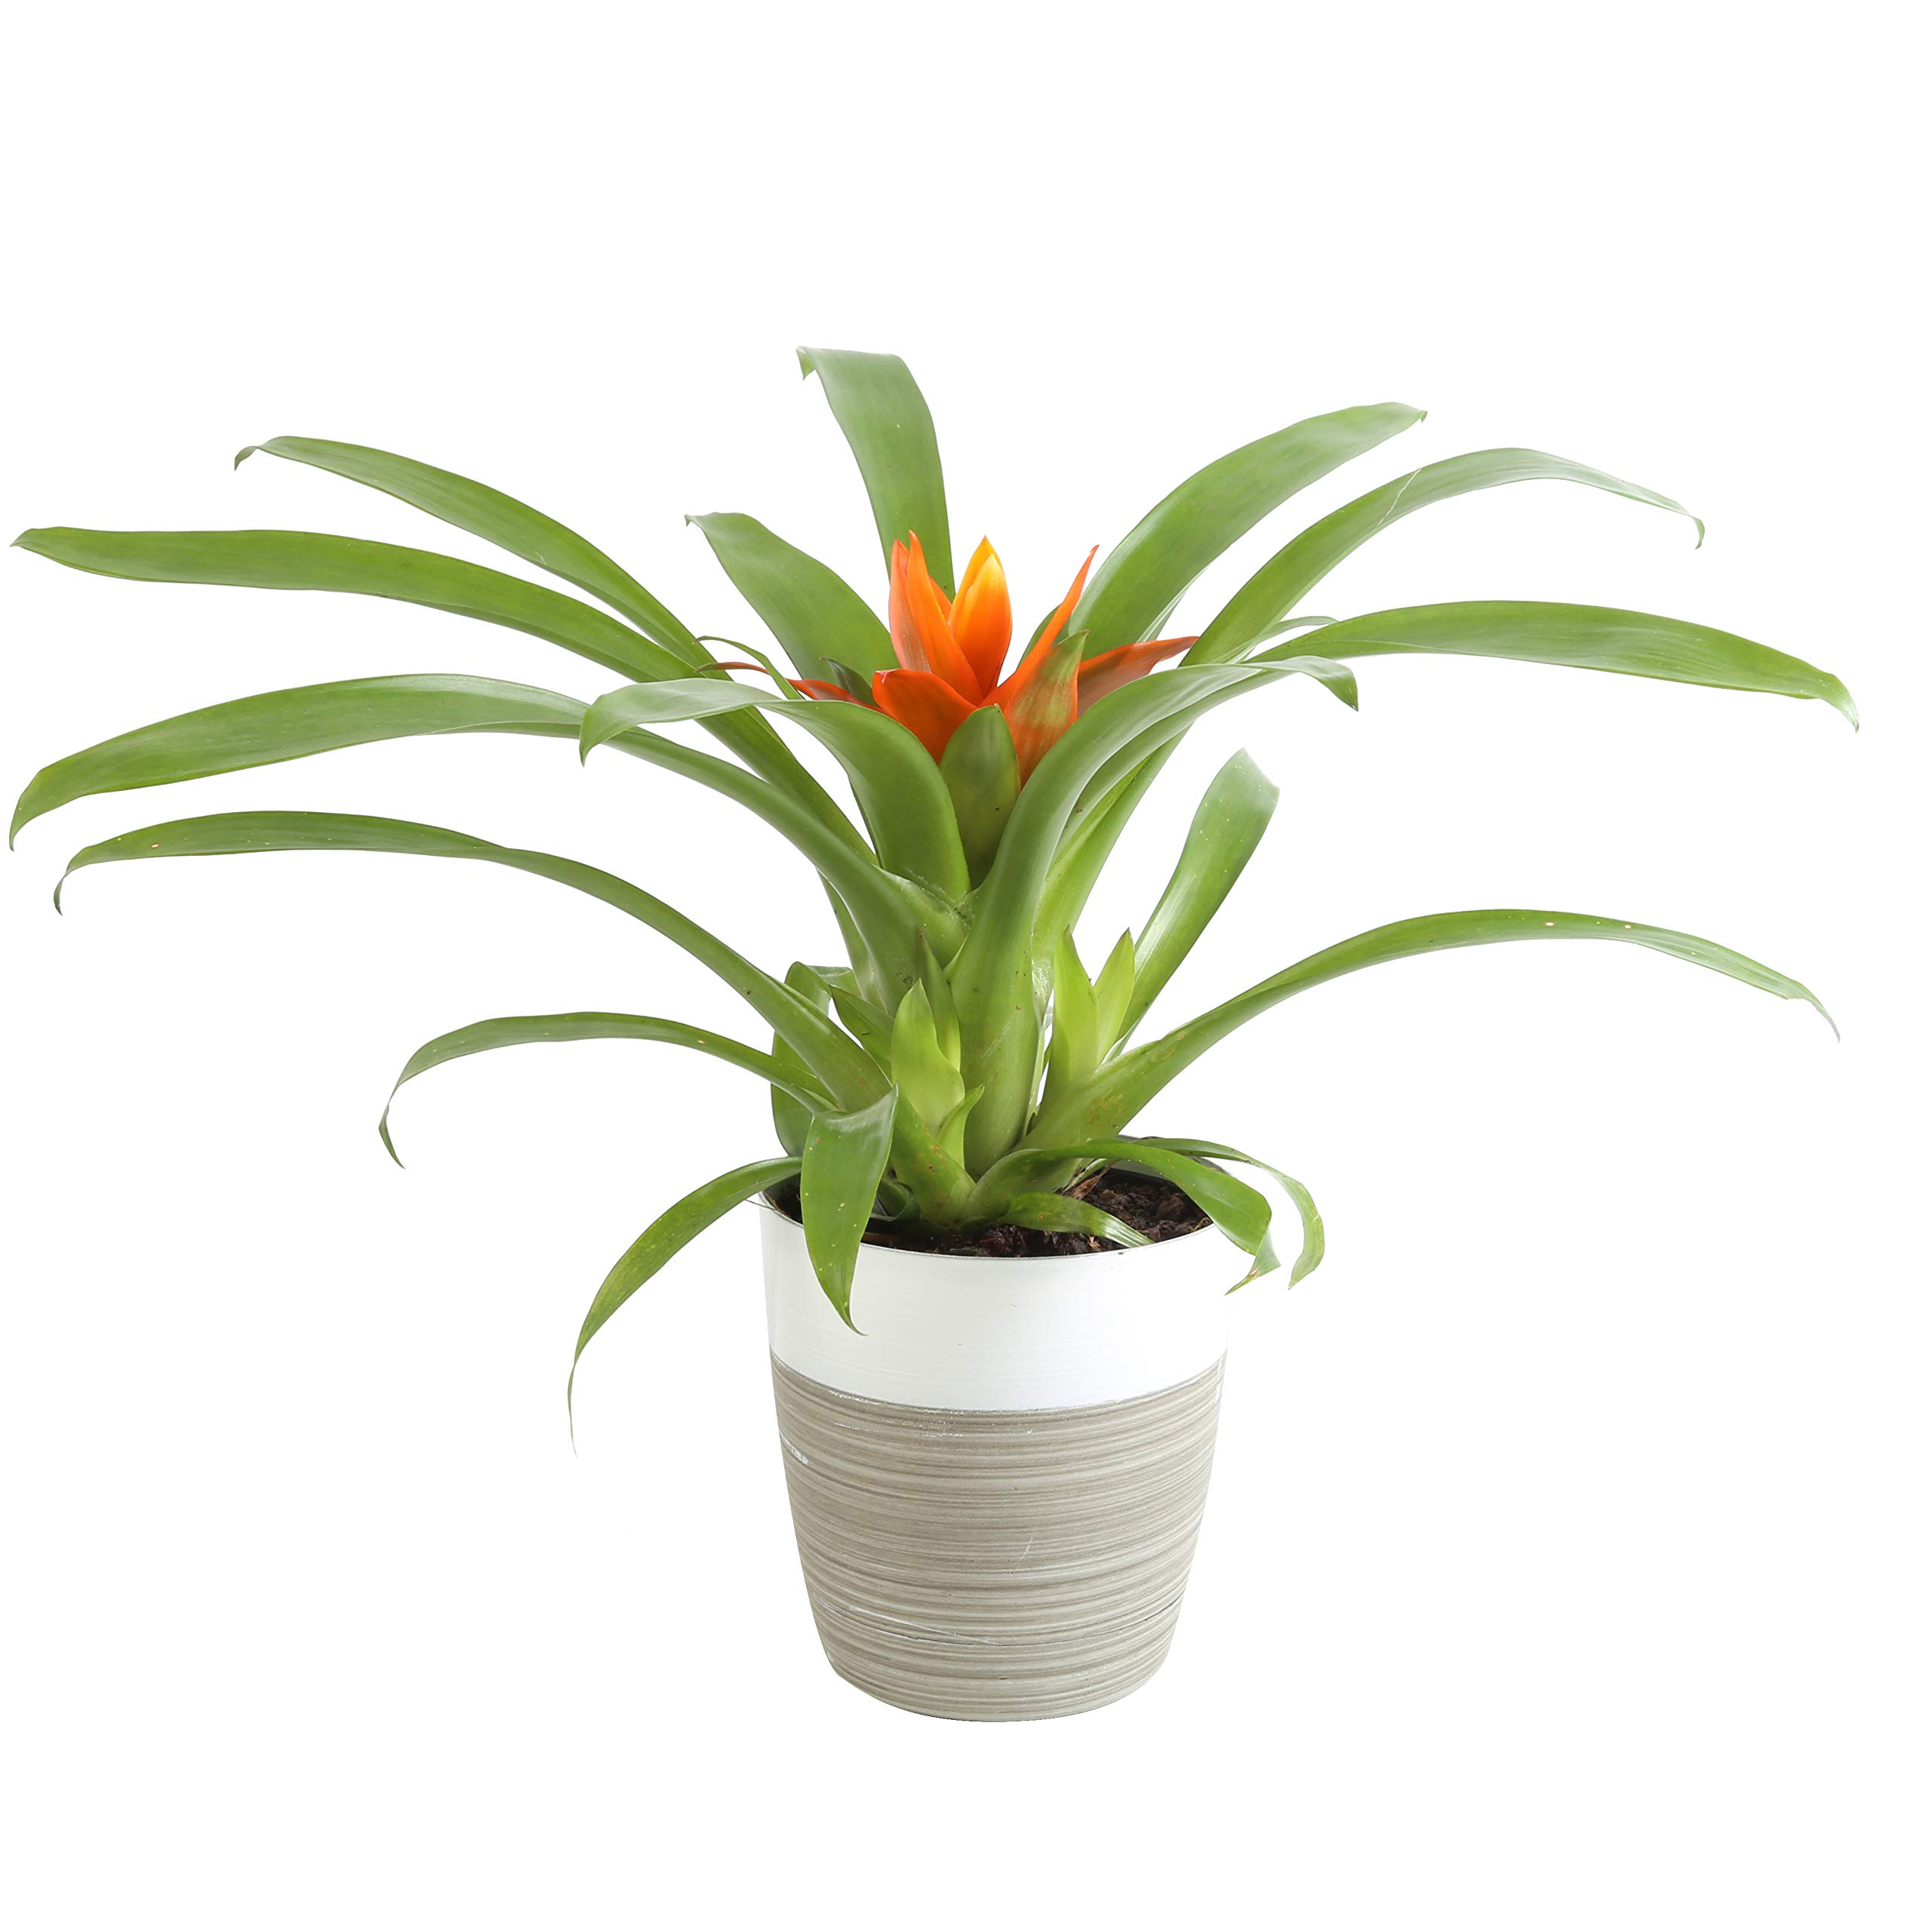 Costa Farms Flowering Bromeliad Indoor Plant Color - Grower's Choice 12-Inches Tall White-Neutral Décor Planter by Costa Farms (Image #1)